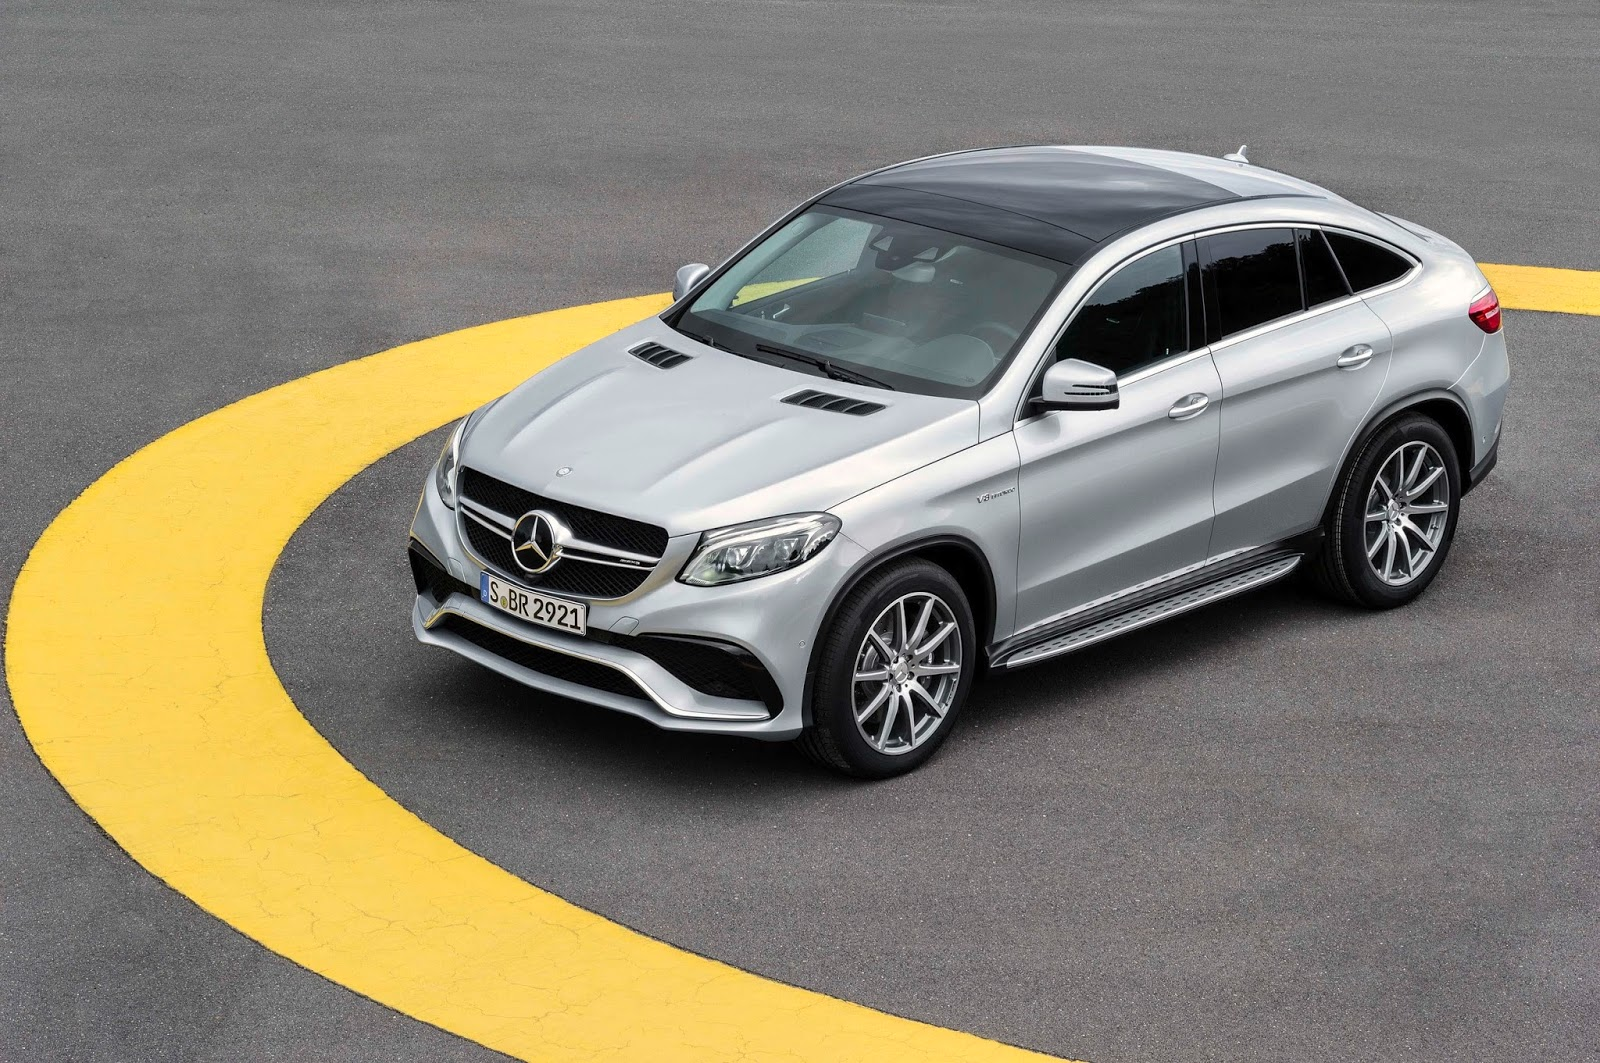 new mercedes amg gle 63 s coupe gets 577hp bi turbo v8 carscoops. Black Bedroom Furniture Sets. Home Design Ideas